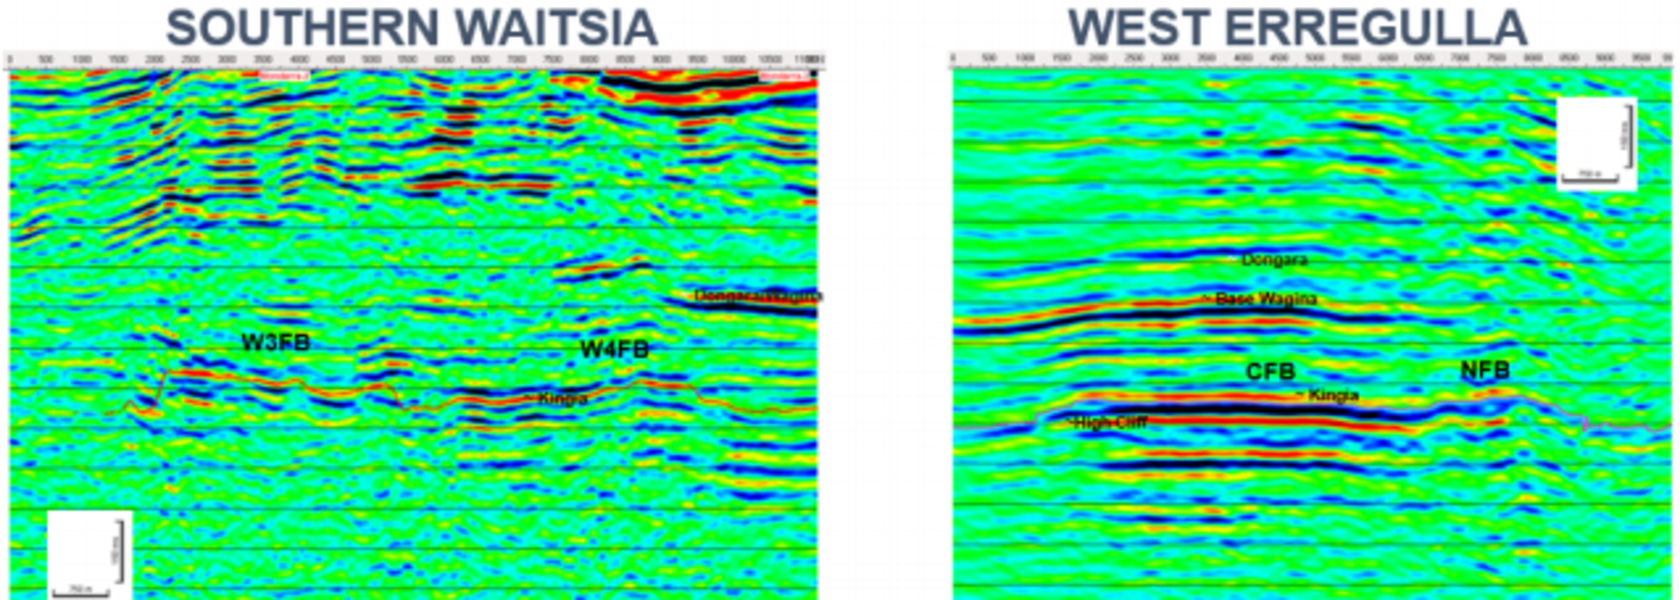 Strike provides more evidence for West Erregulla - Waitsia correlation